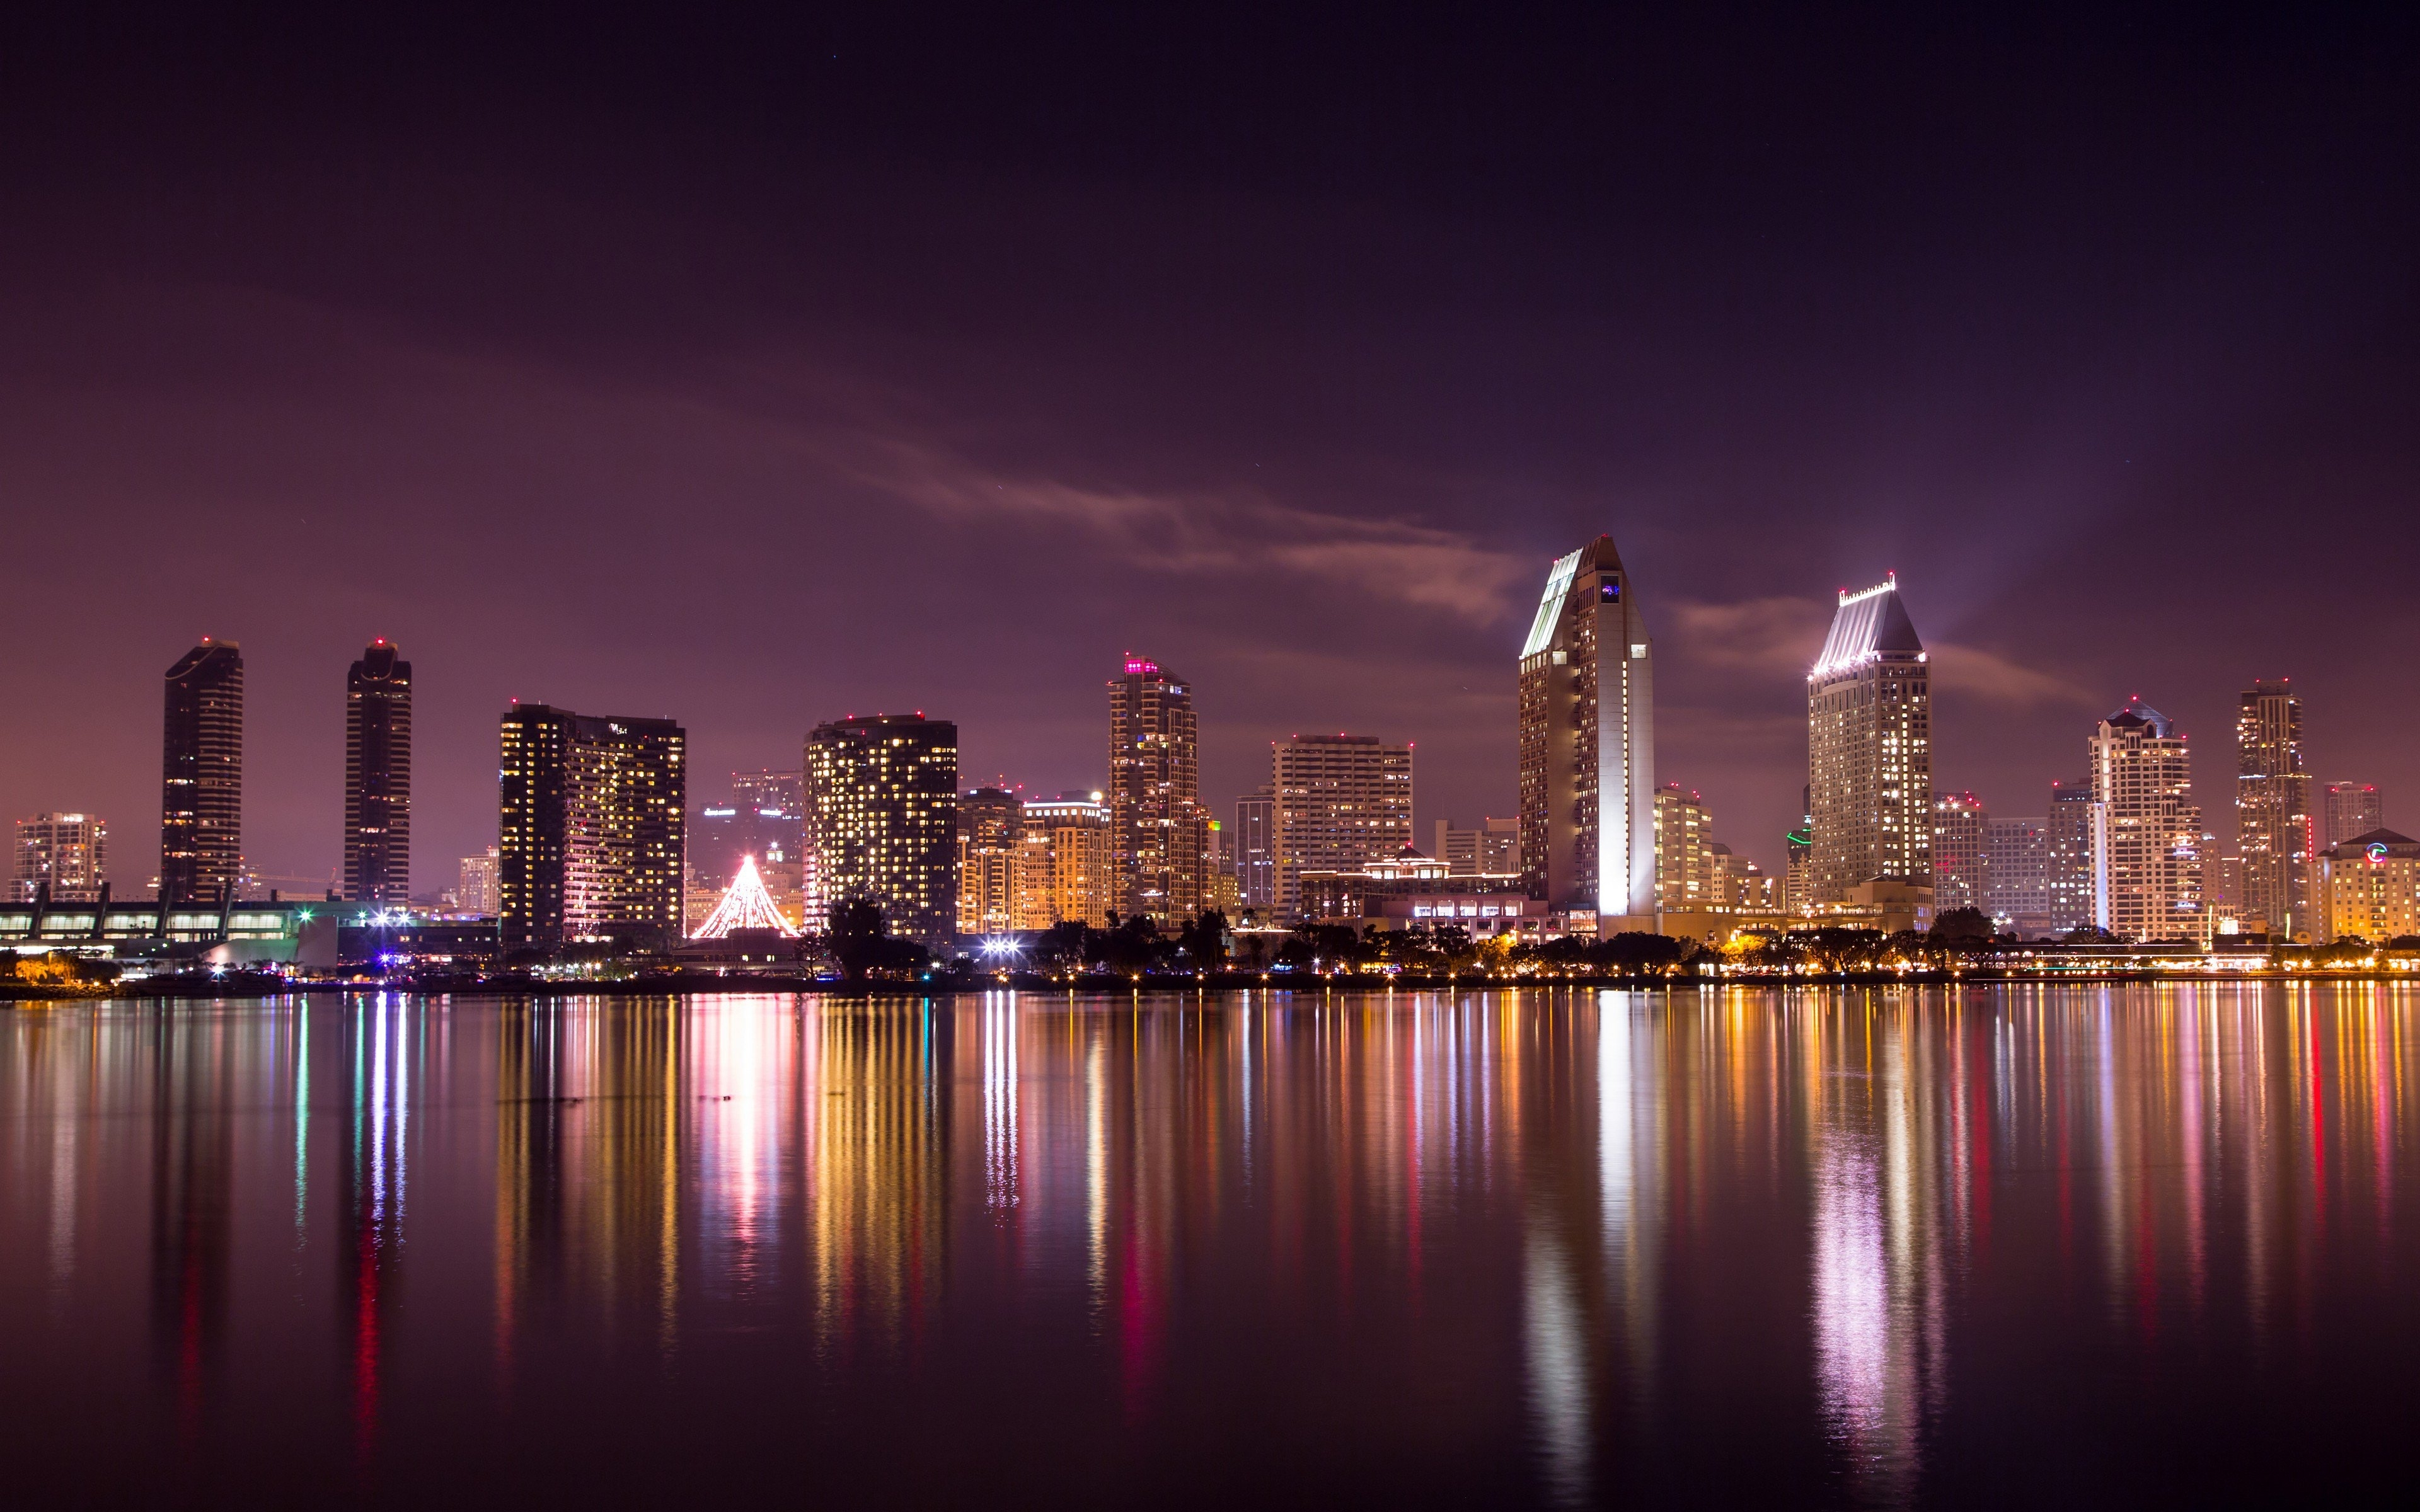 san diego skyline, hd world, 4k wallpapers, images, backgrounds